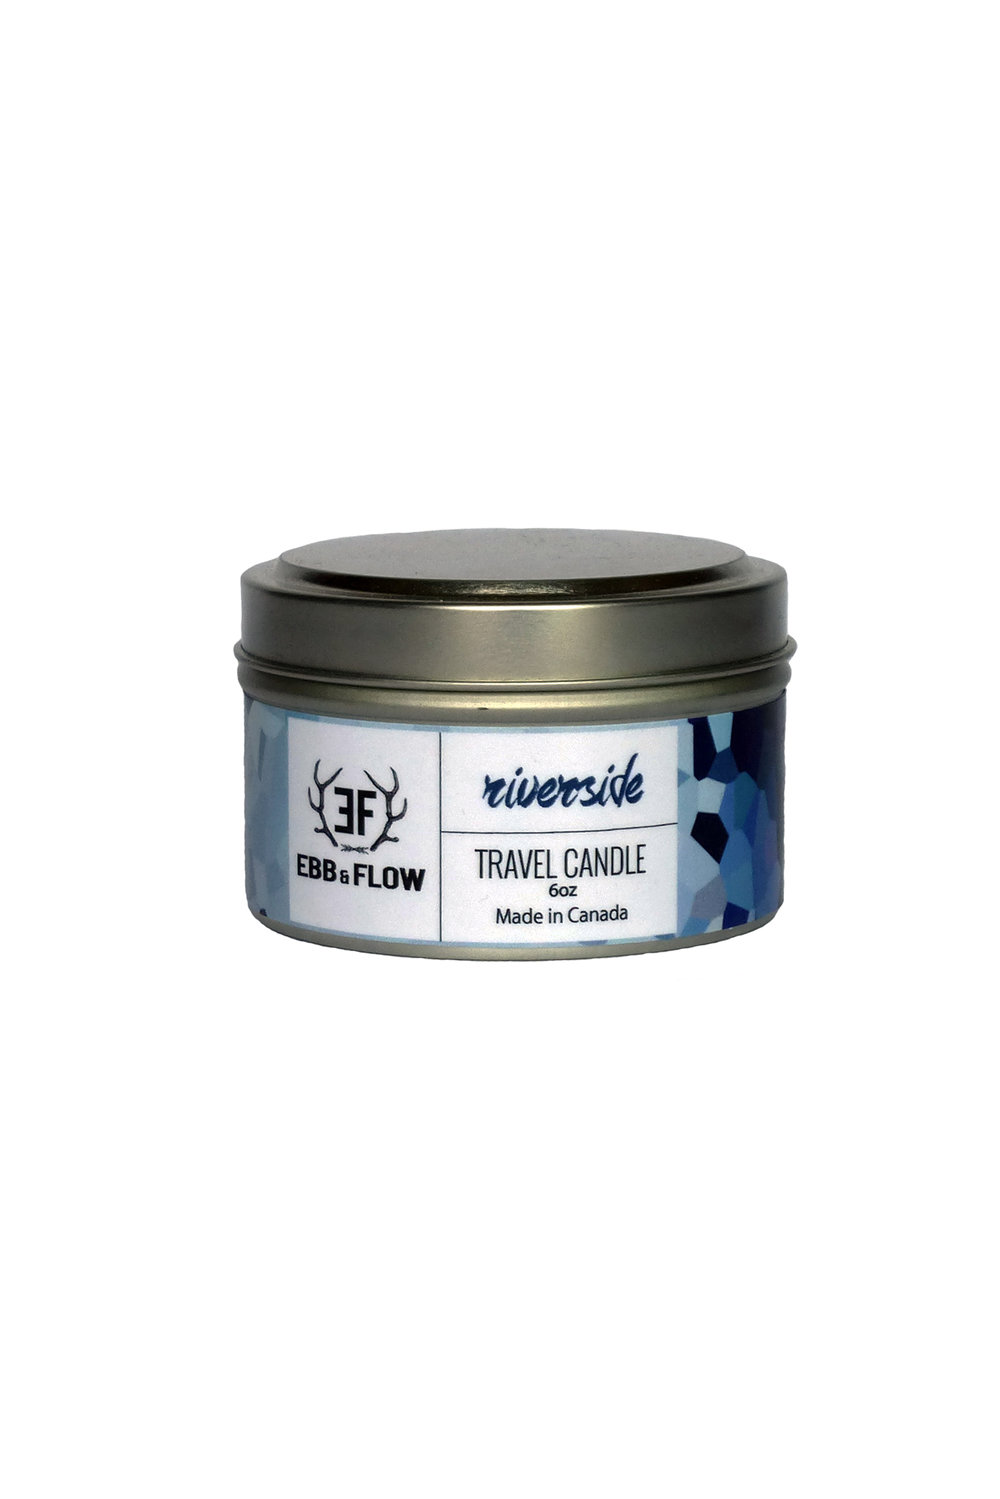 TRAVEL CANDLE - RIVERSIDE